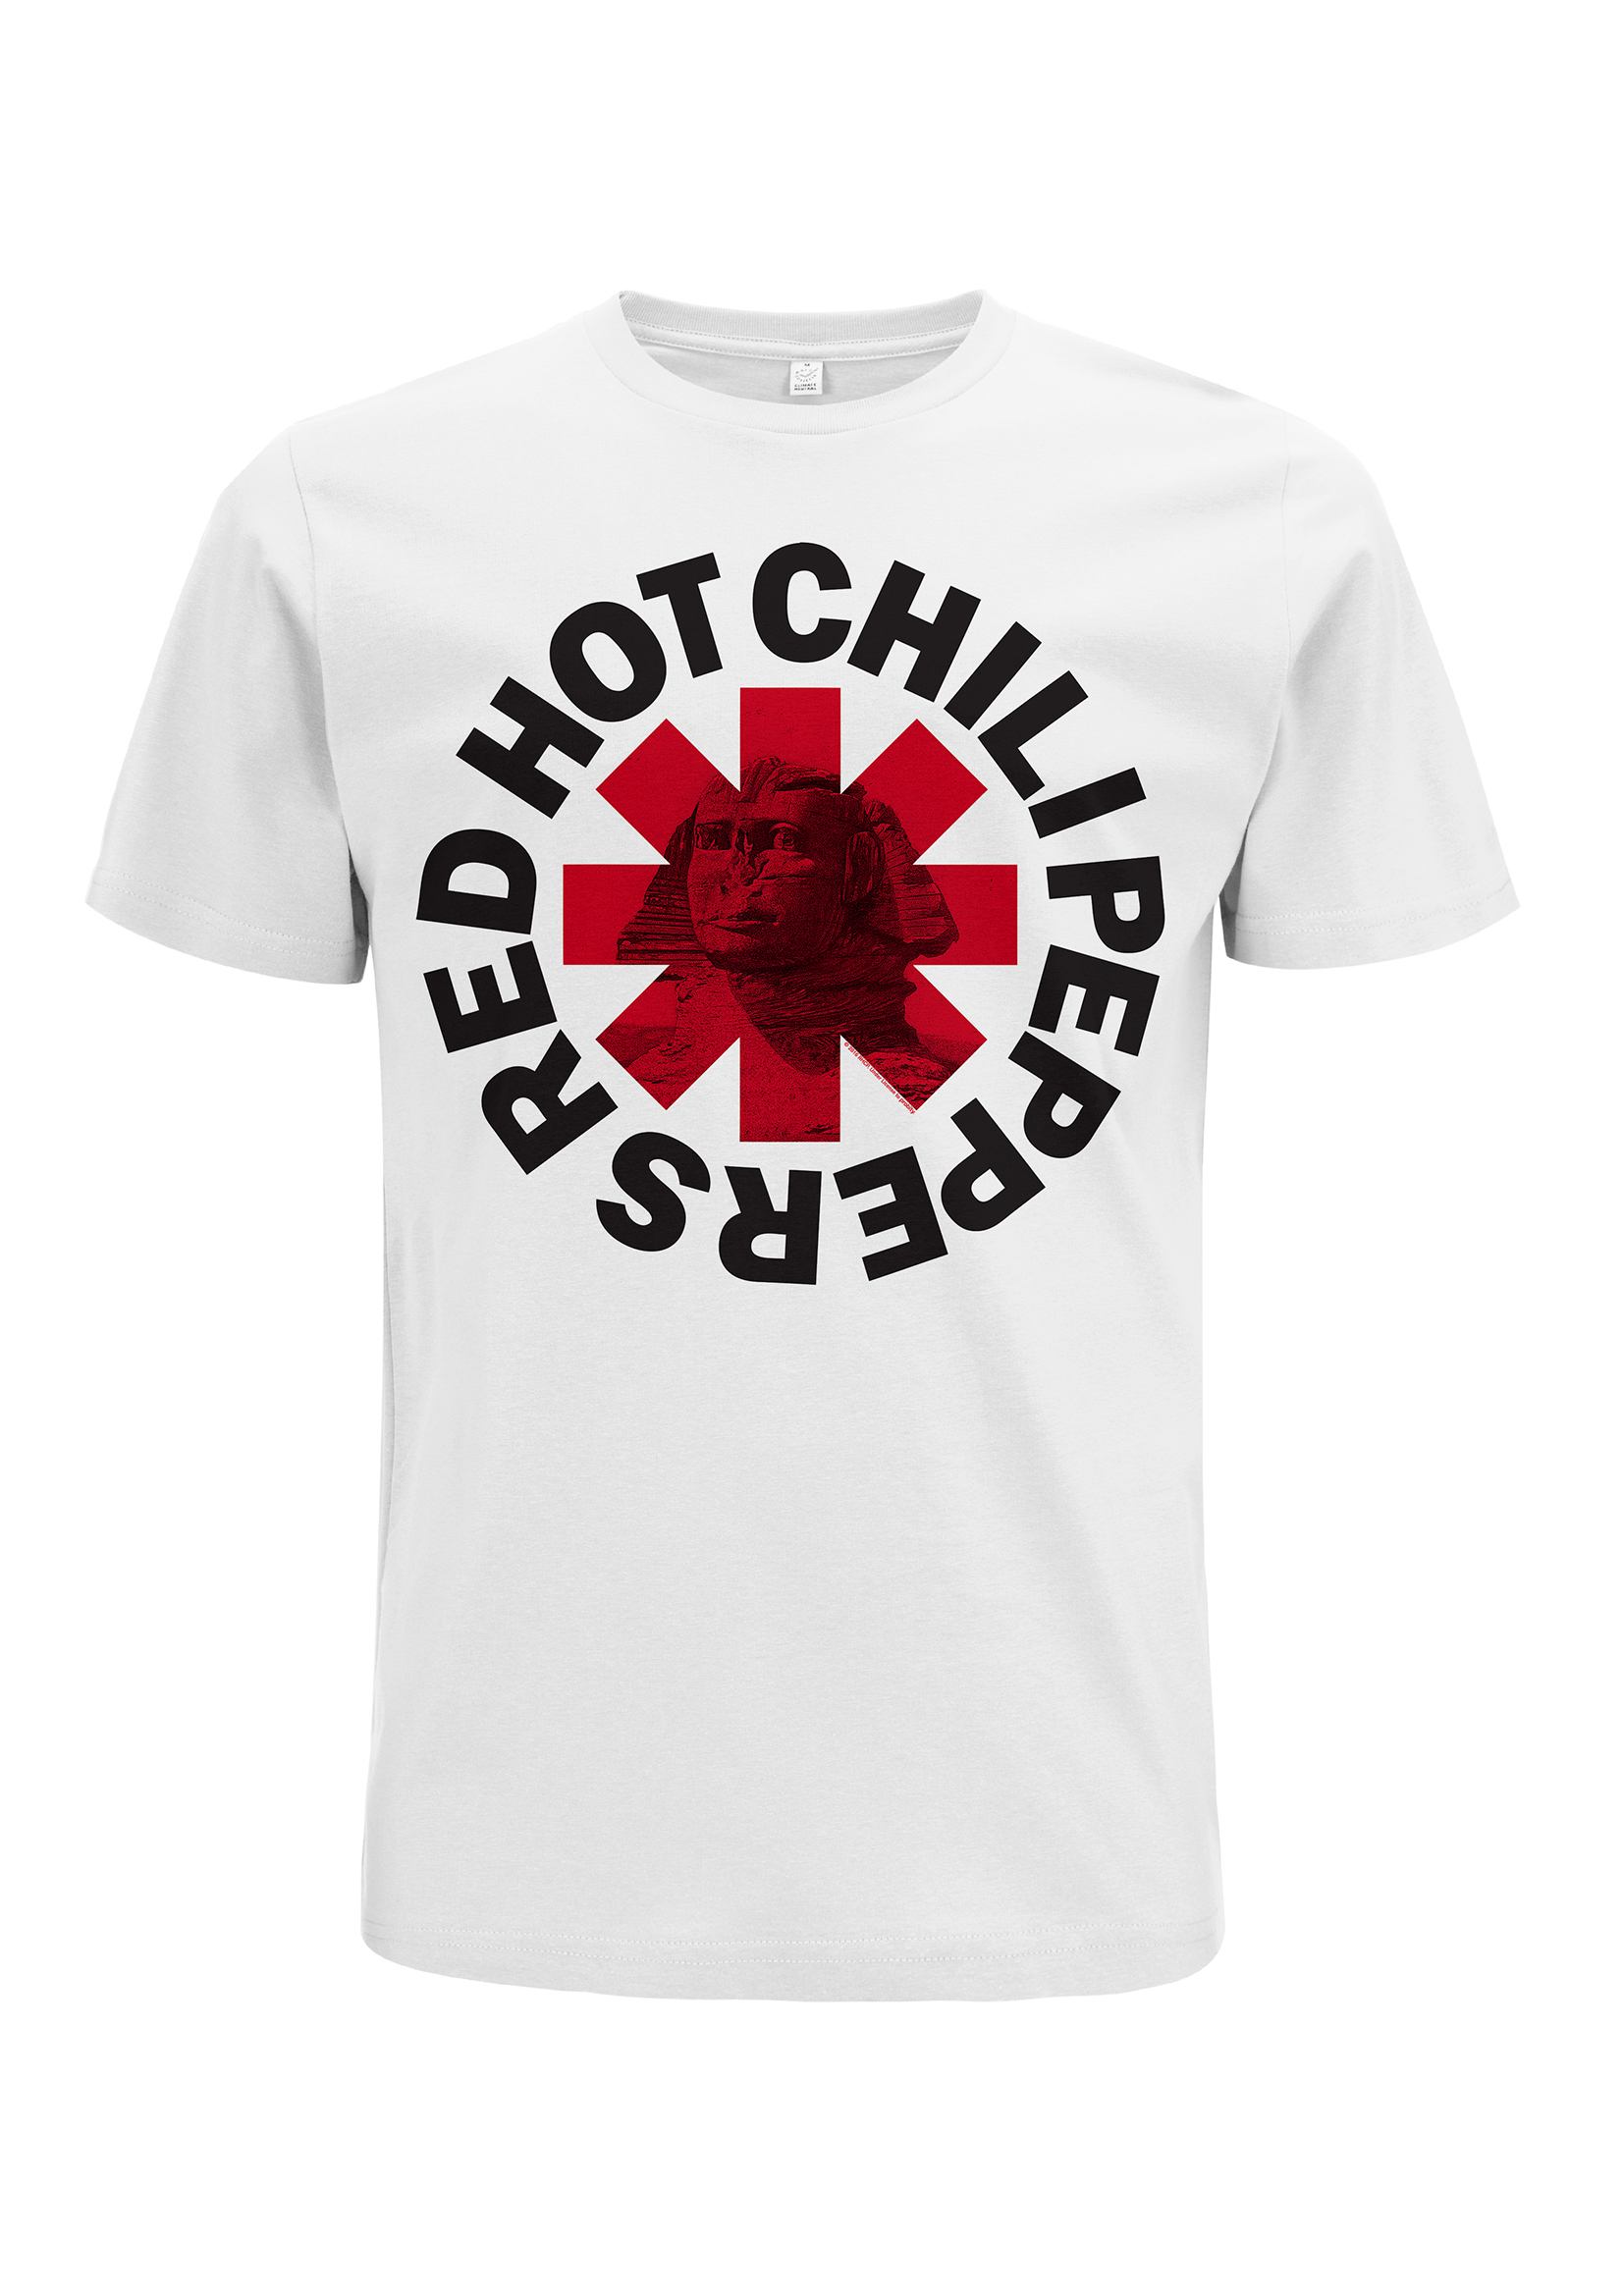 Sphinx Asterisk - White Tee - Red Hot Chili Peppers